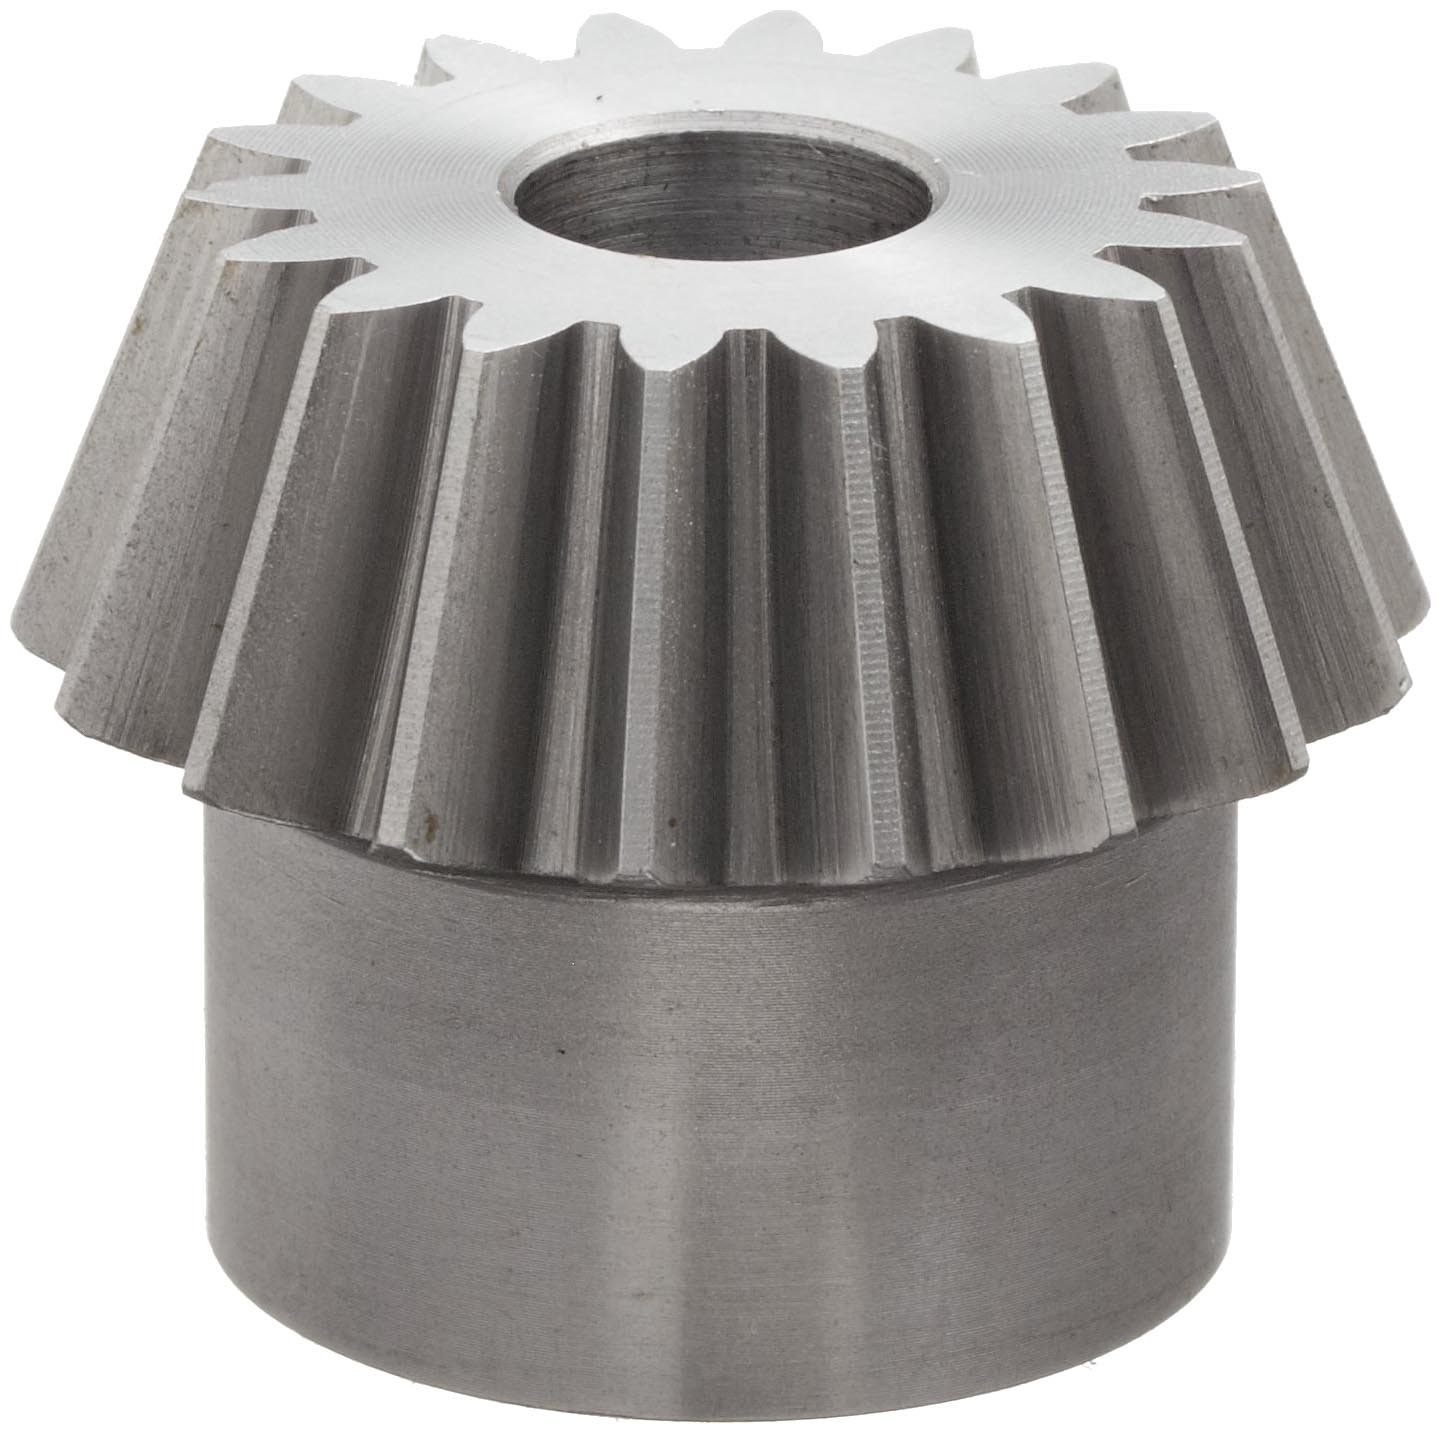 "Boston Gear PA45312Y-P Bevel Pinion Gear, 3:1 Ratio, 0.500"" Bore, 12 Pitch, 18 Teeth, 20 Degree Pressure Angle, Straight Bevel, Steel"